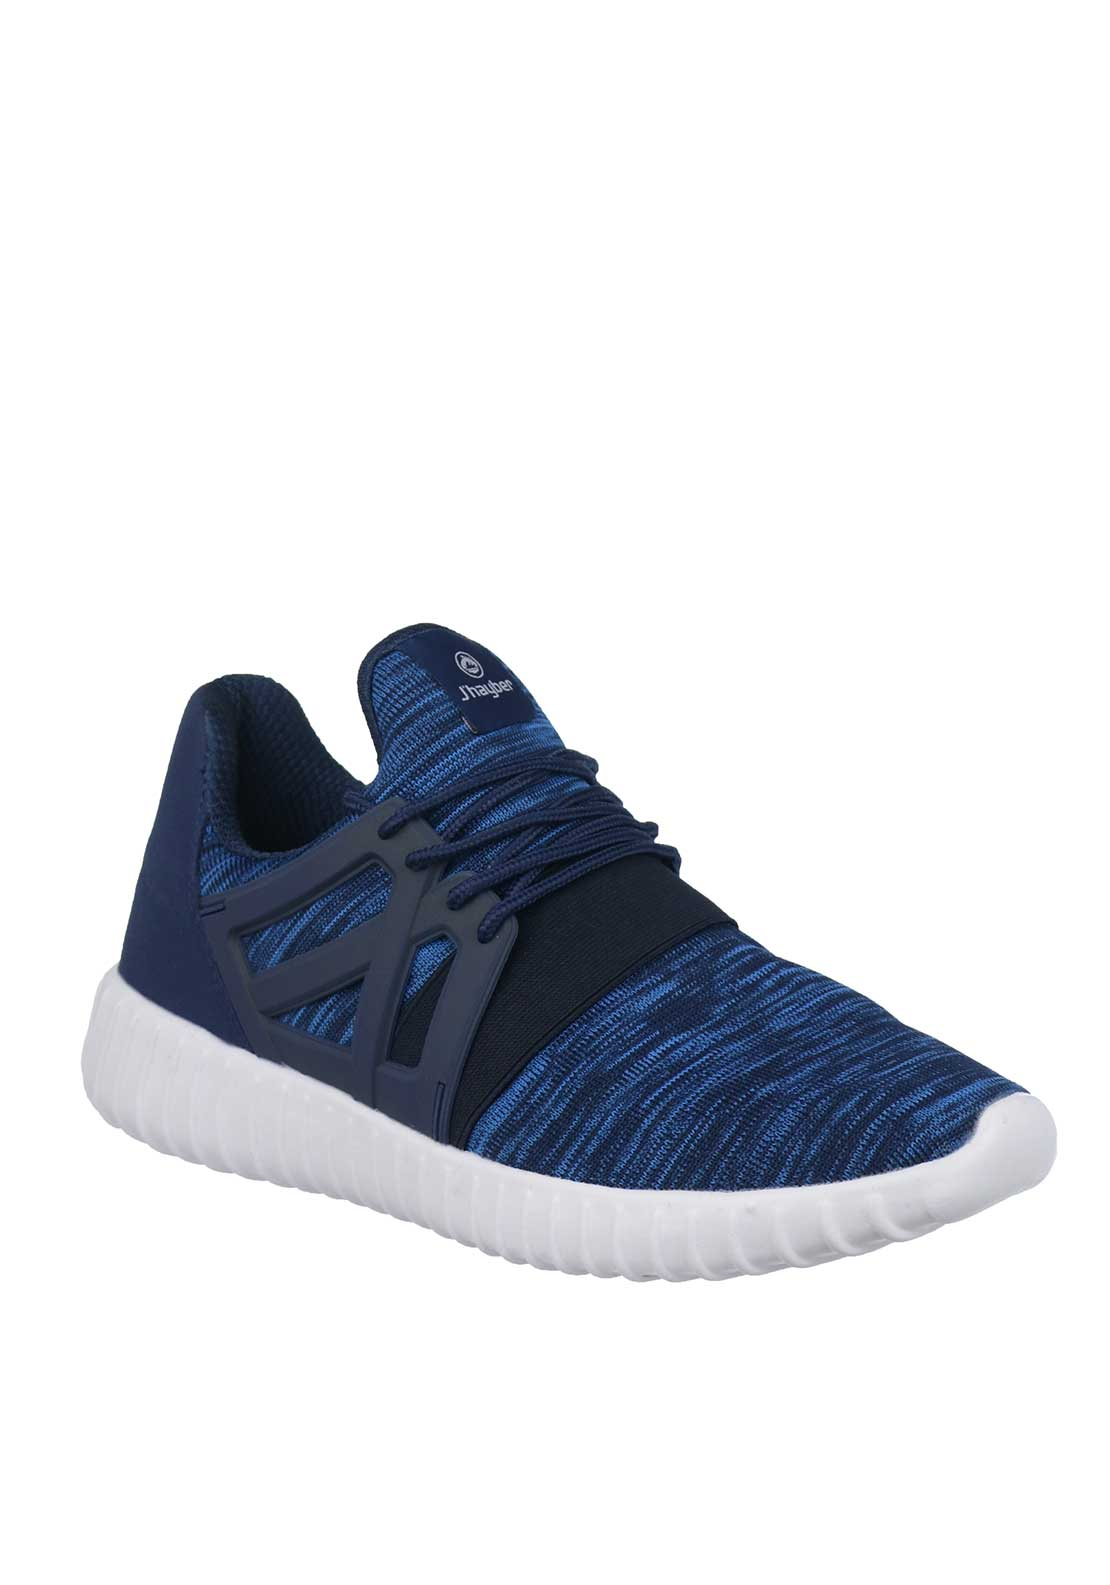 J'hayber Woven Knit Lace Trainers, Navy